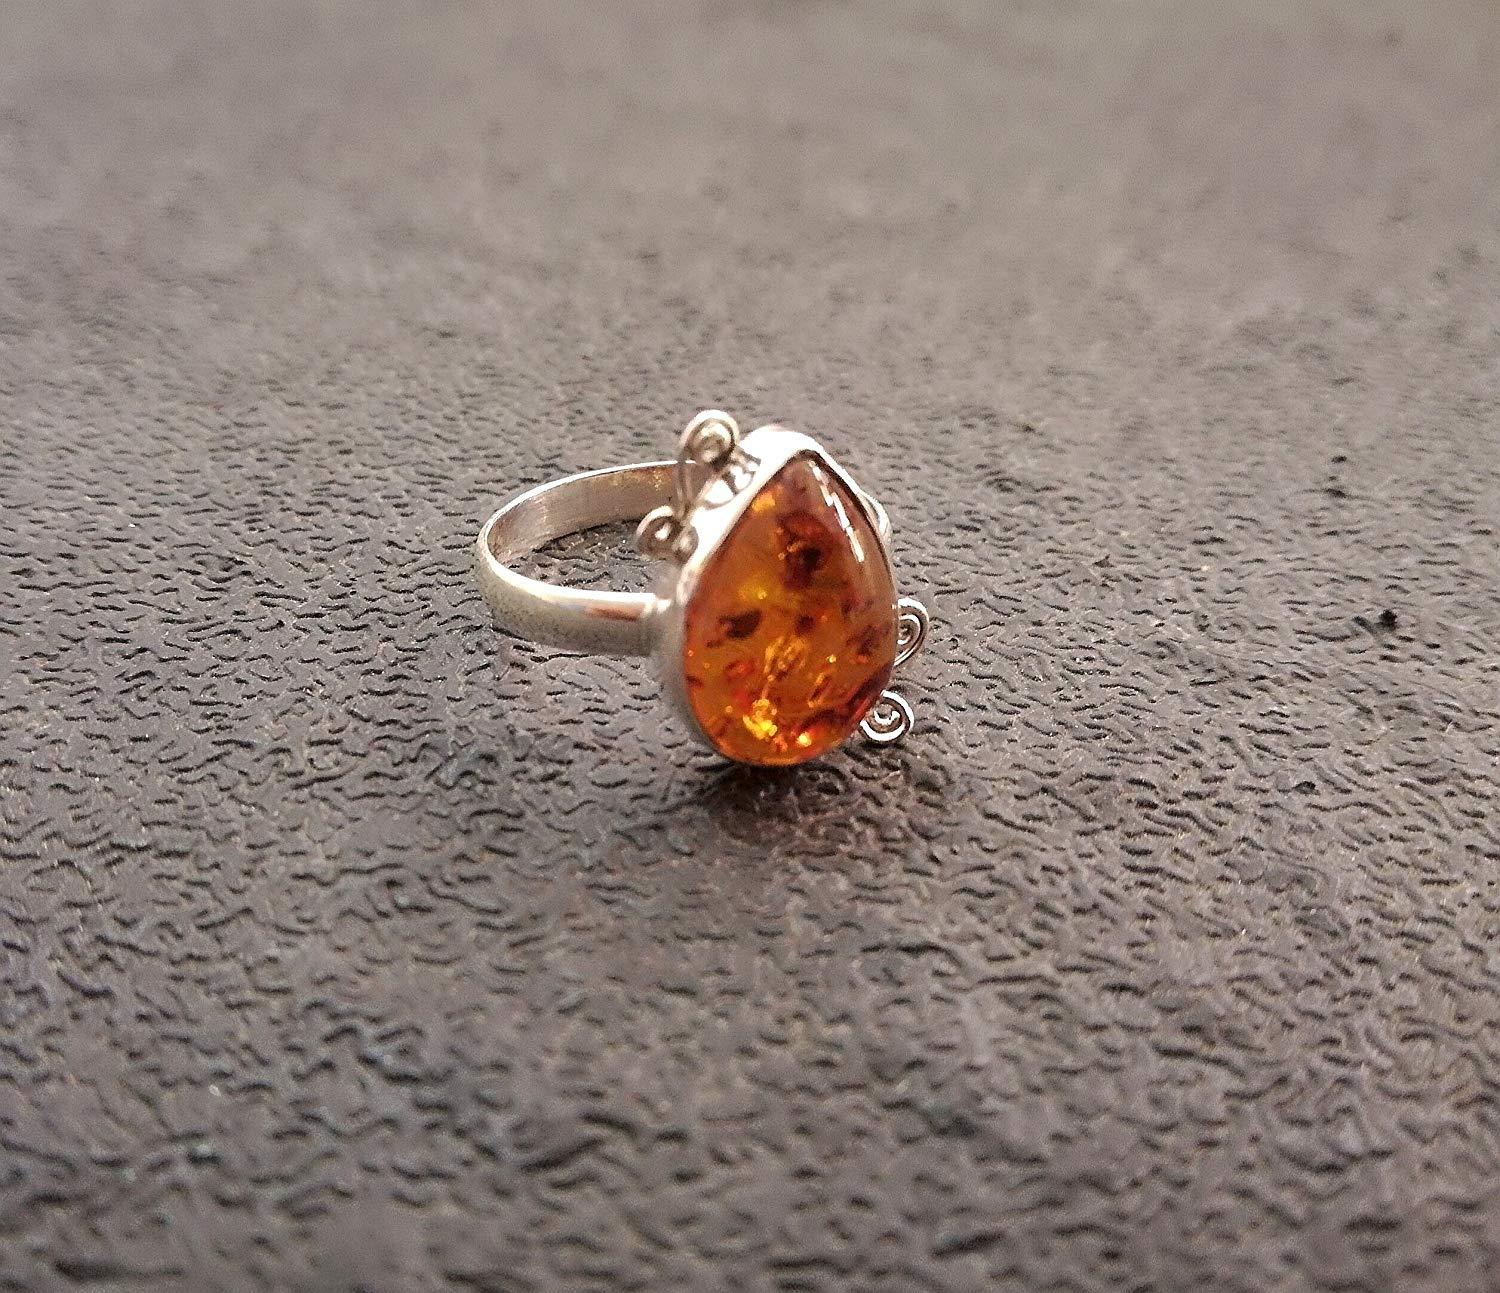 Amber Ring, 925 Sterling Silver, Healing Crystal, Hippie Ring, Bezel RIng, Girl Choice Ring, Attractive Ring, Yoga Ring, Charming Ring, Bride Ring, Boho Ring, Southwestern Ring, US All Size Ring